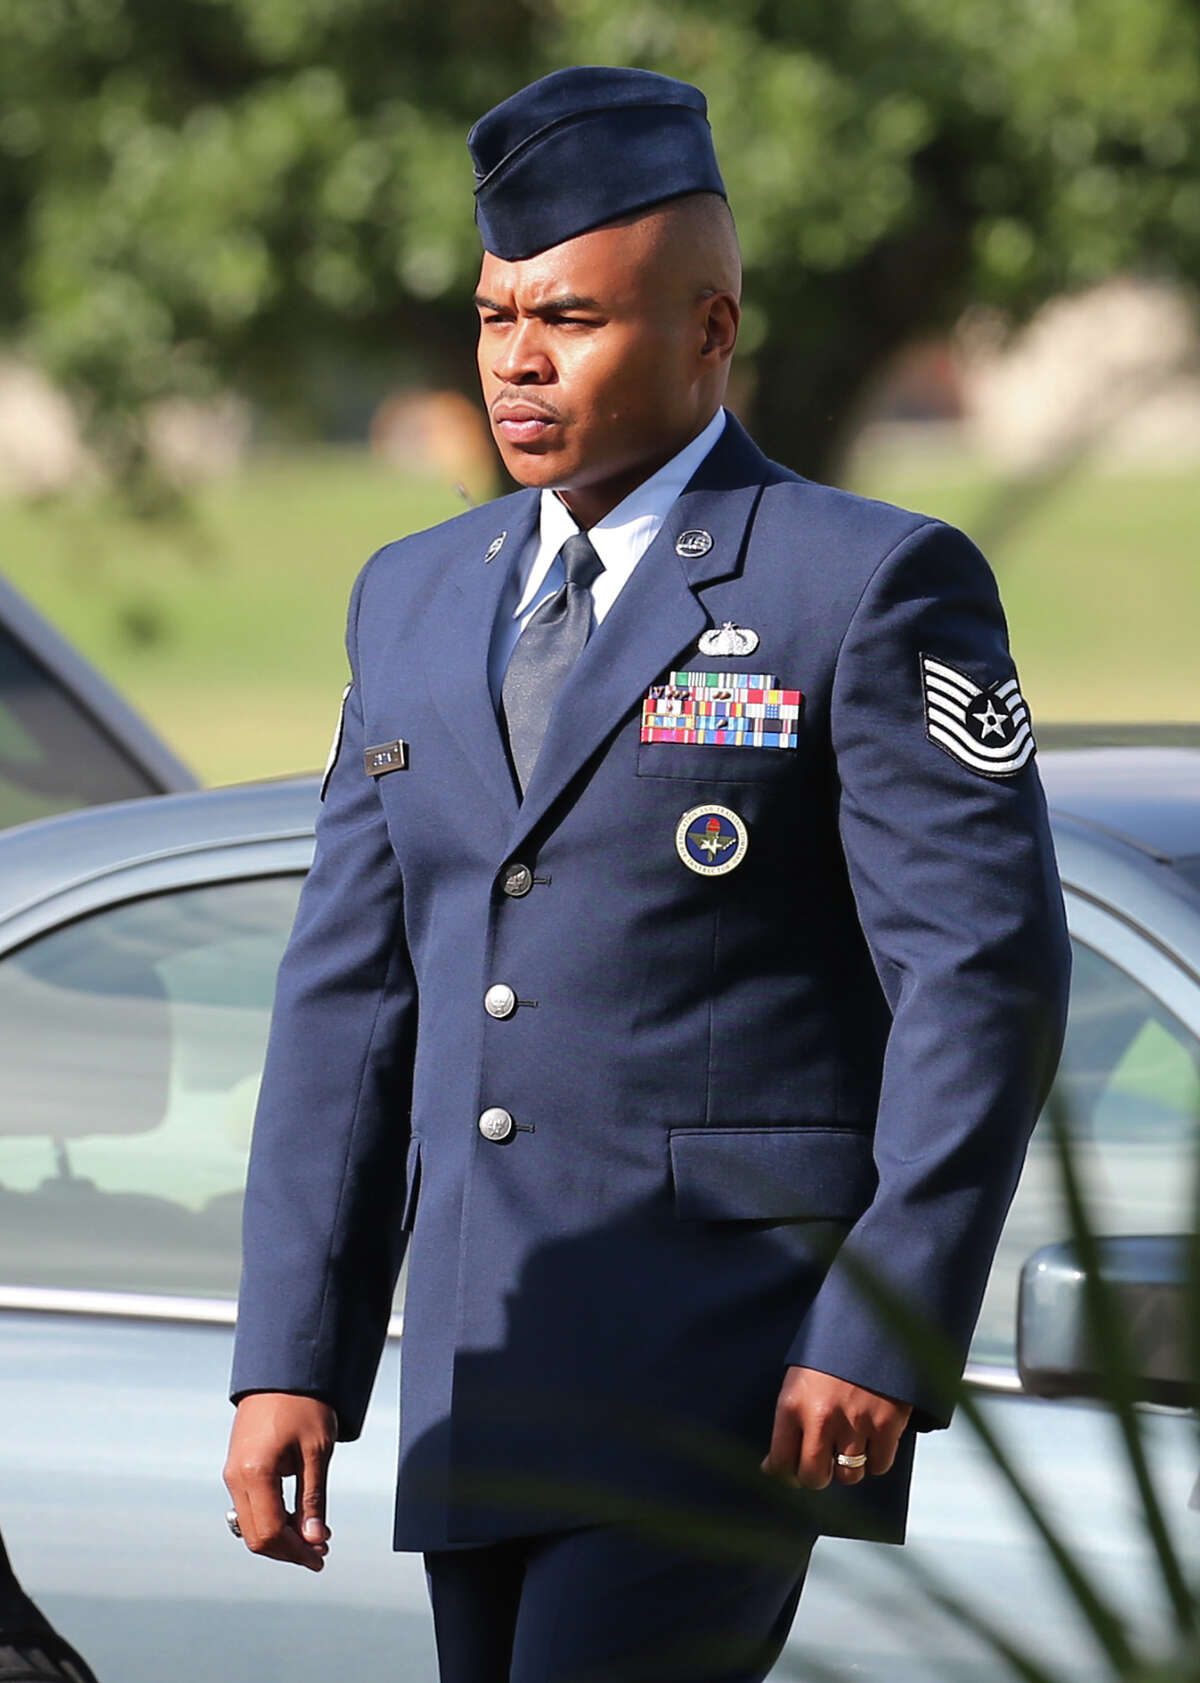 Tech. Sgt. Marc Gayden arrives at Lackland Air Force Base for his trial on sodomy and rape charges, Tuesday, July 23, 2013.